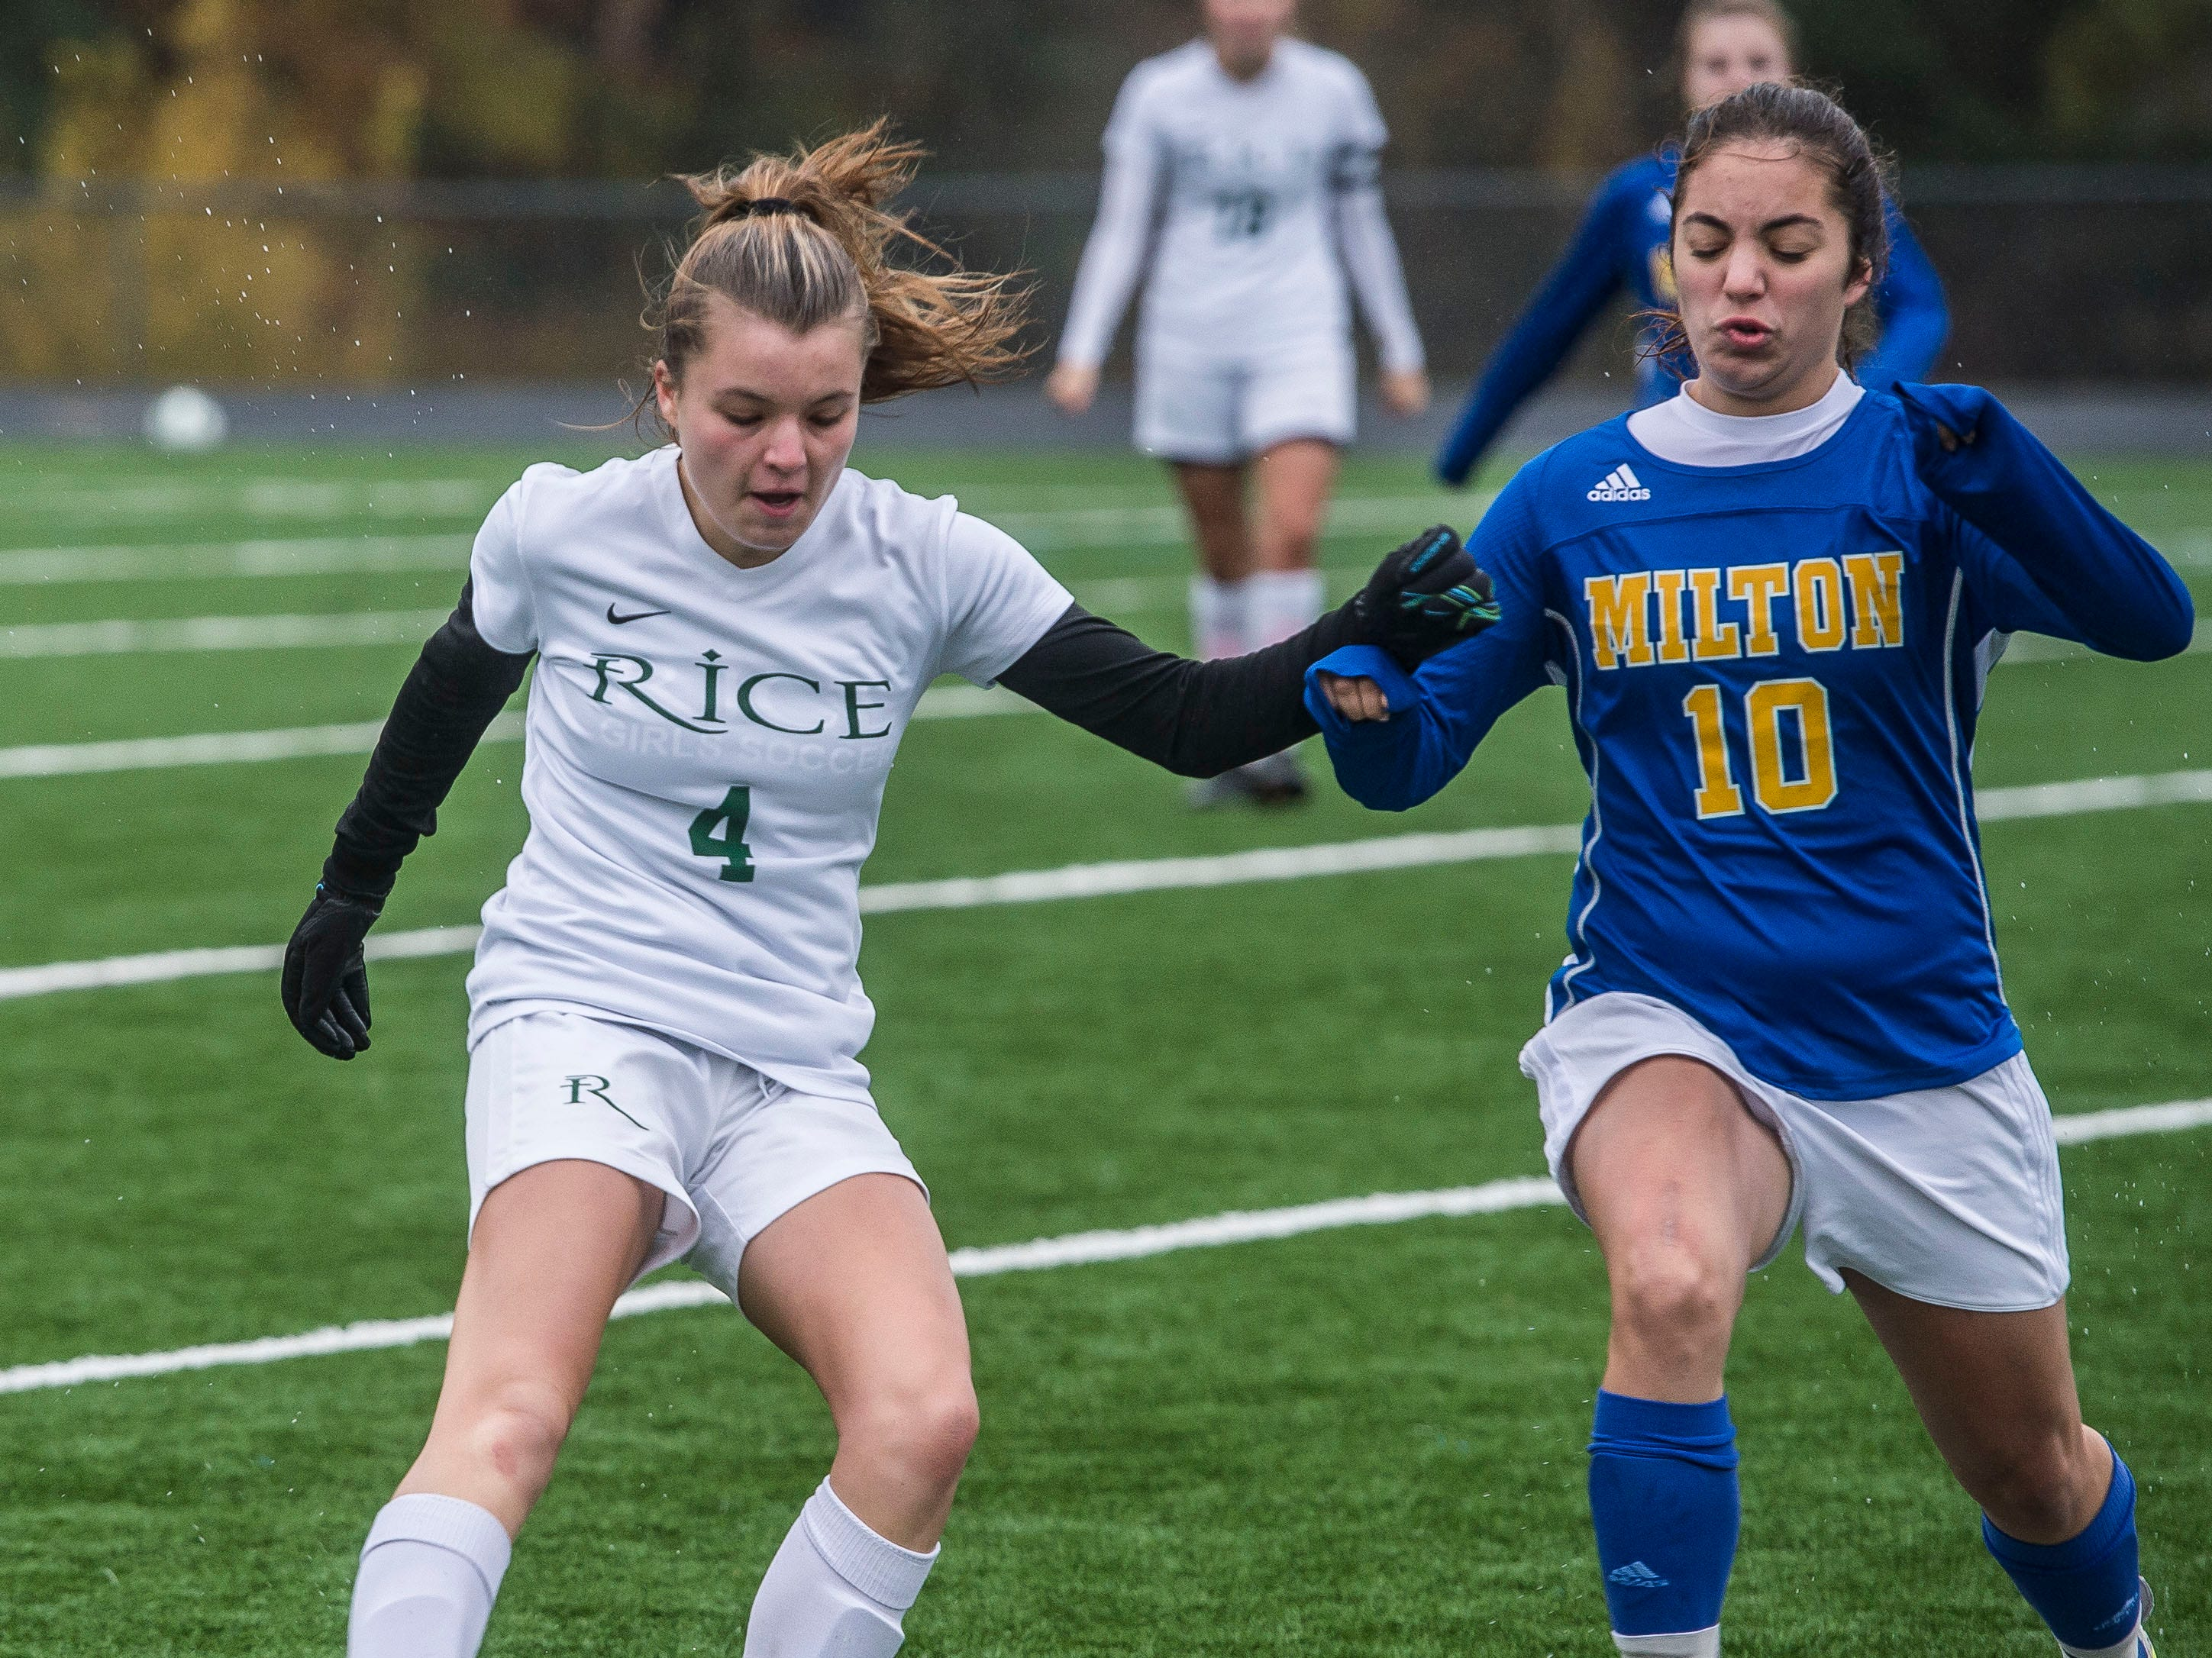 Rice #4 Emma Blanck fights off Milton #10 Samantha Orest during the Div. 2 Vermont State girl's high school soccer championship on Saturday, Nov. 3, 2018, at South Burlington High School. Milton won the championship in sudden-death overtime, 2-1.